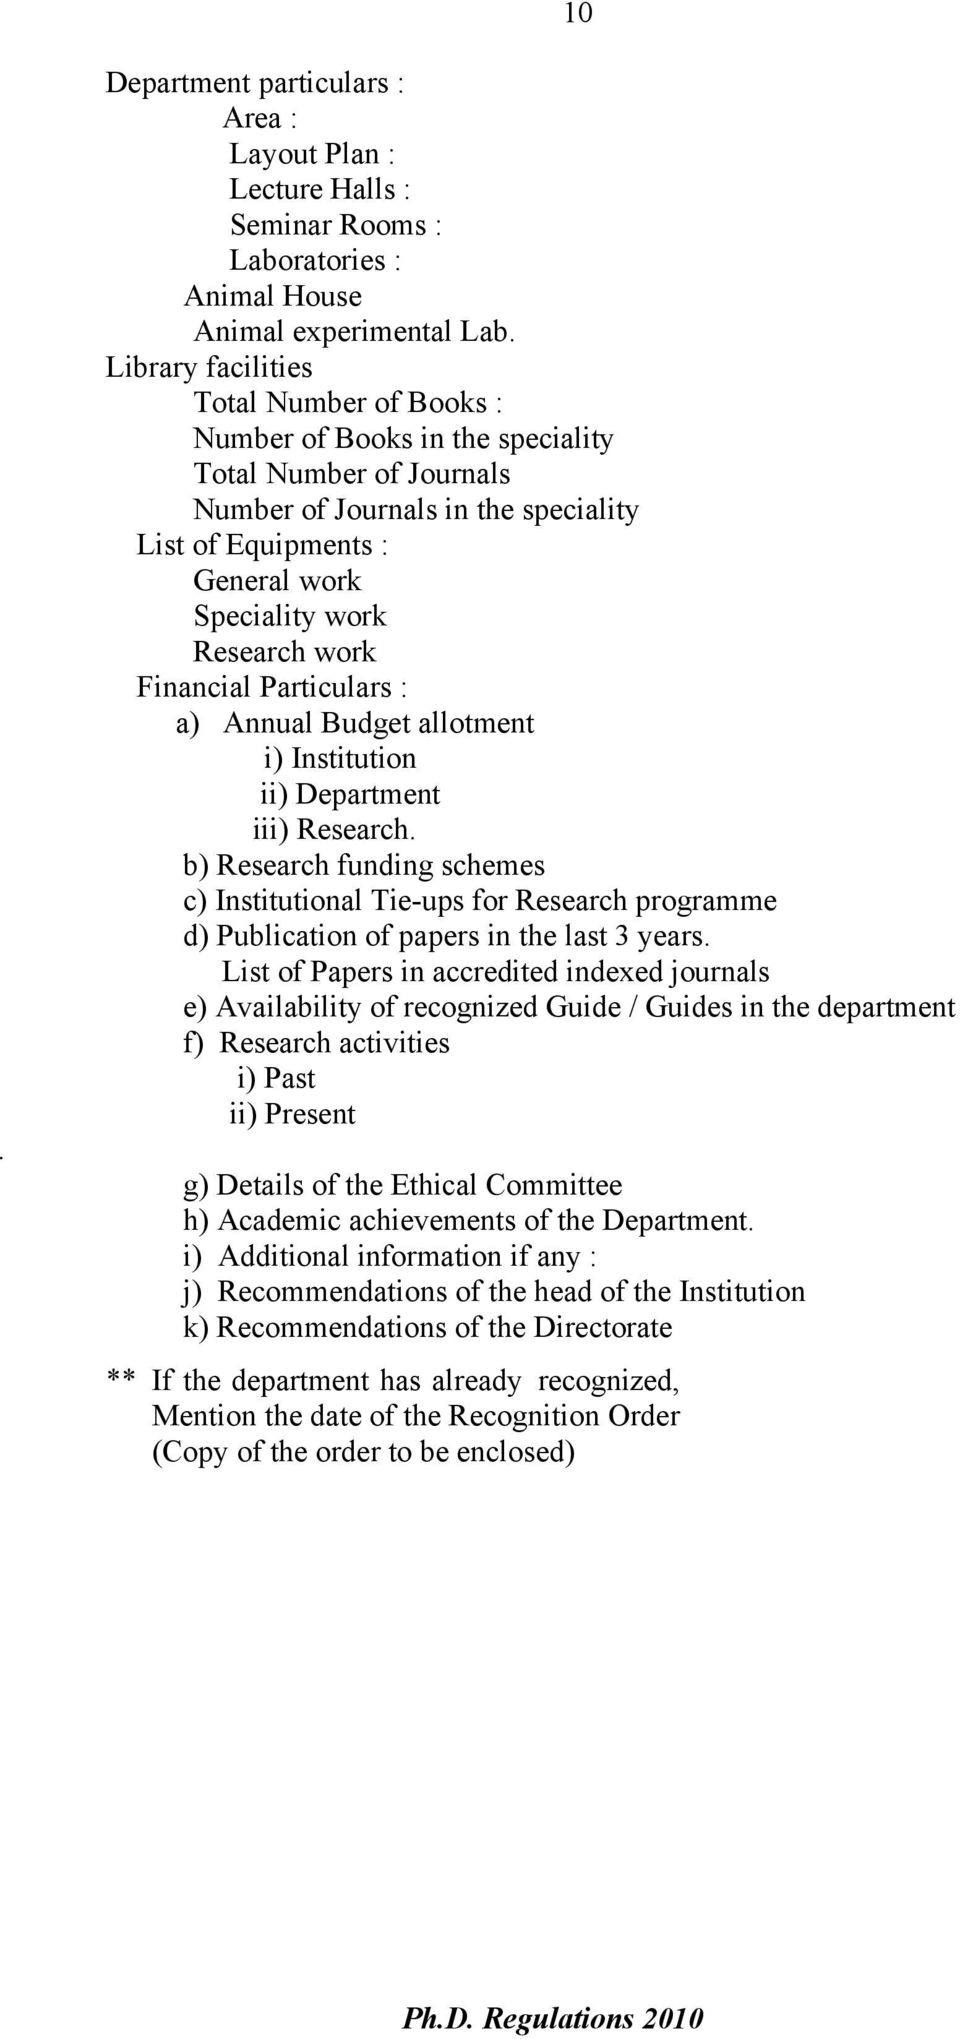 work Financial Particulars : a) Annual Budget allotment i) Institution ii) Department iii) Research.